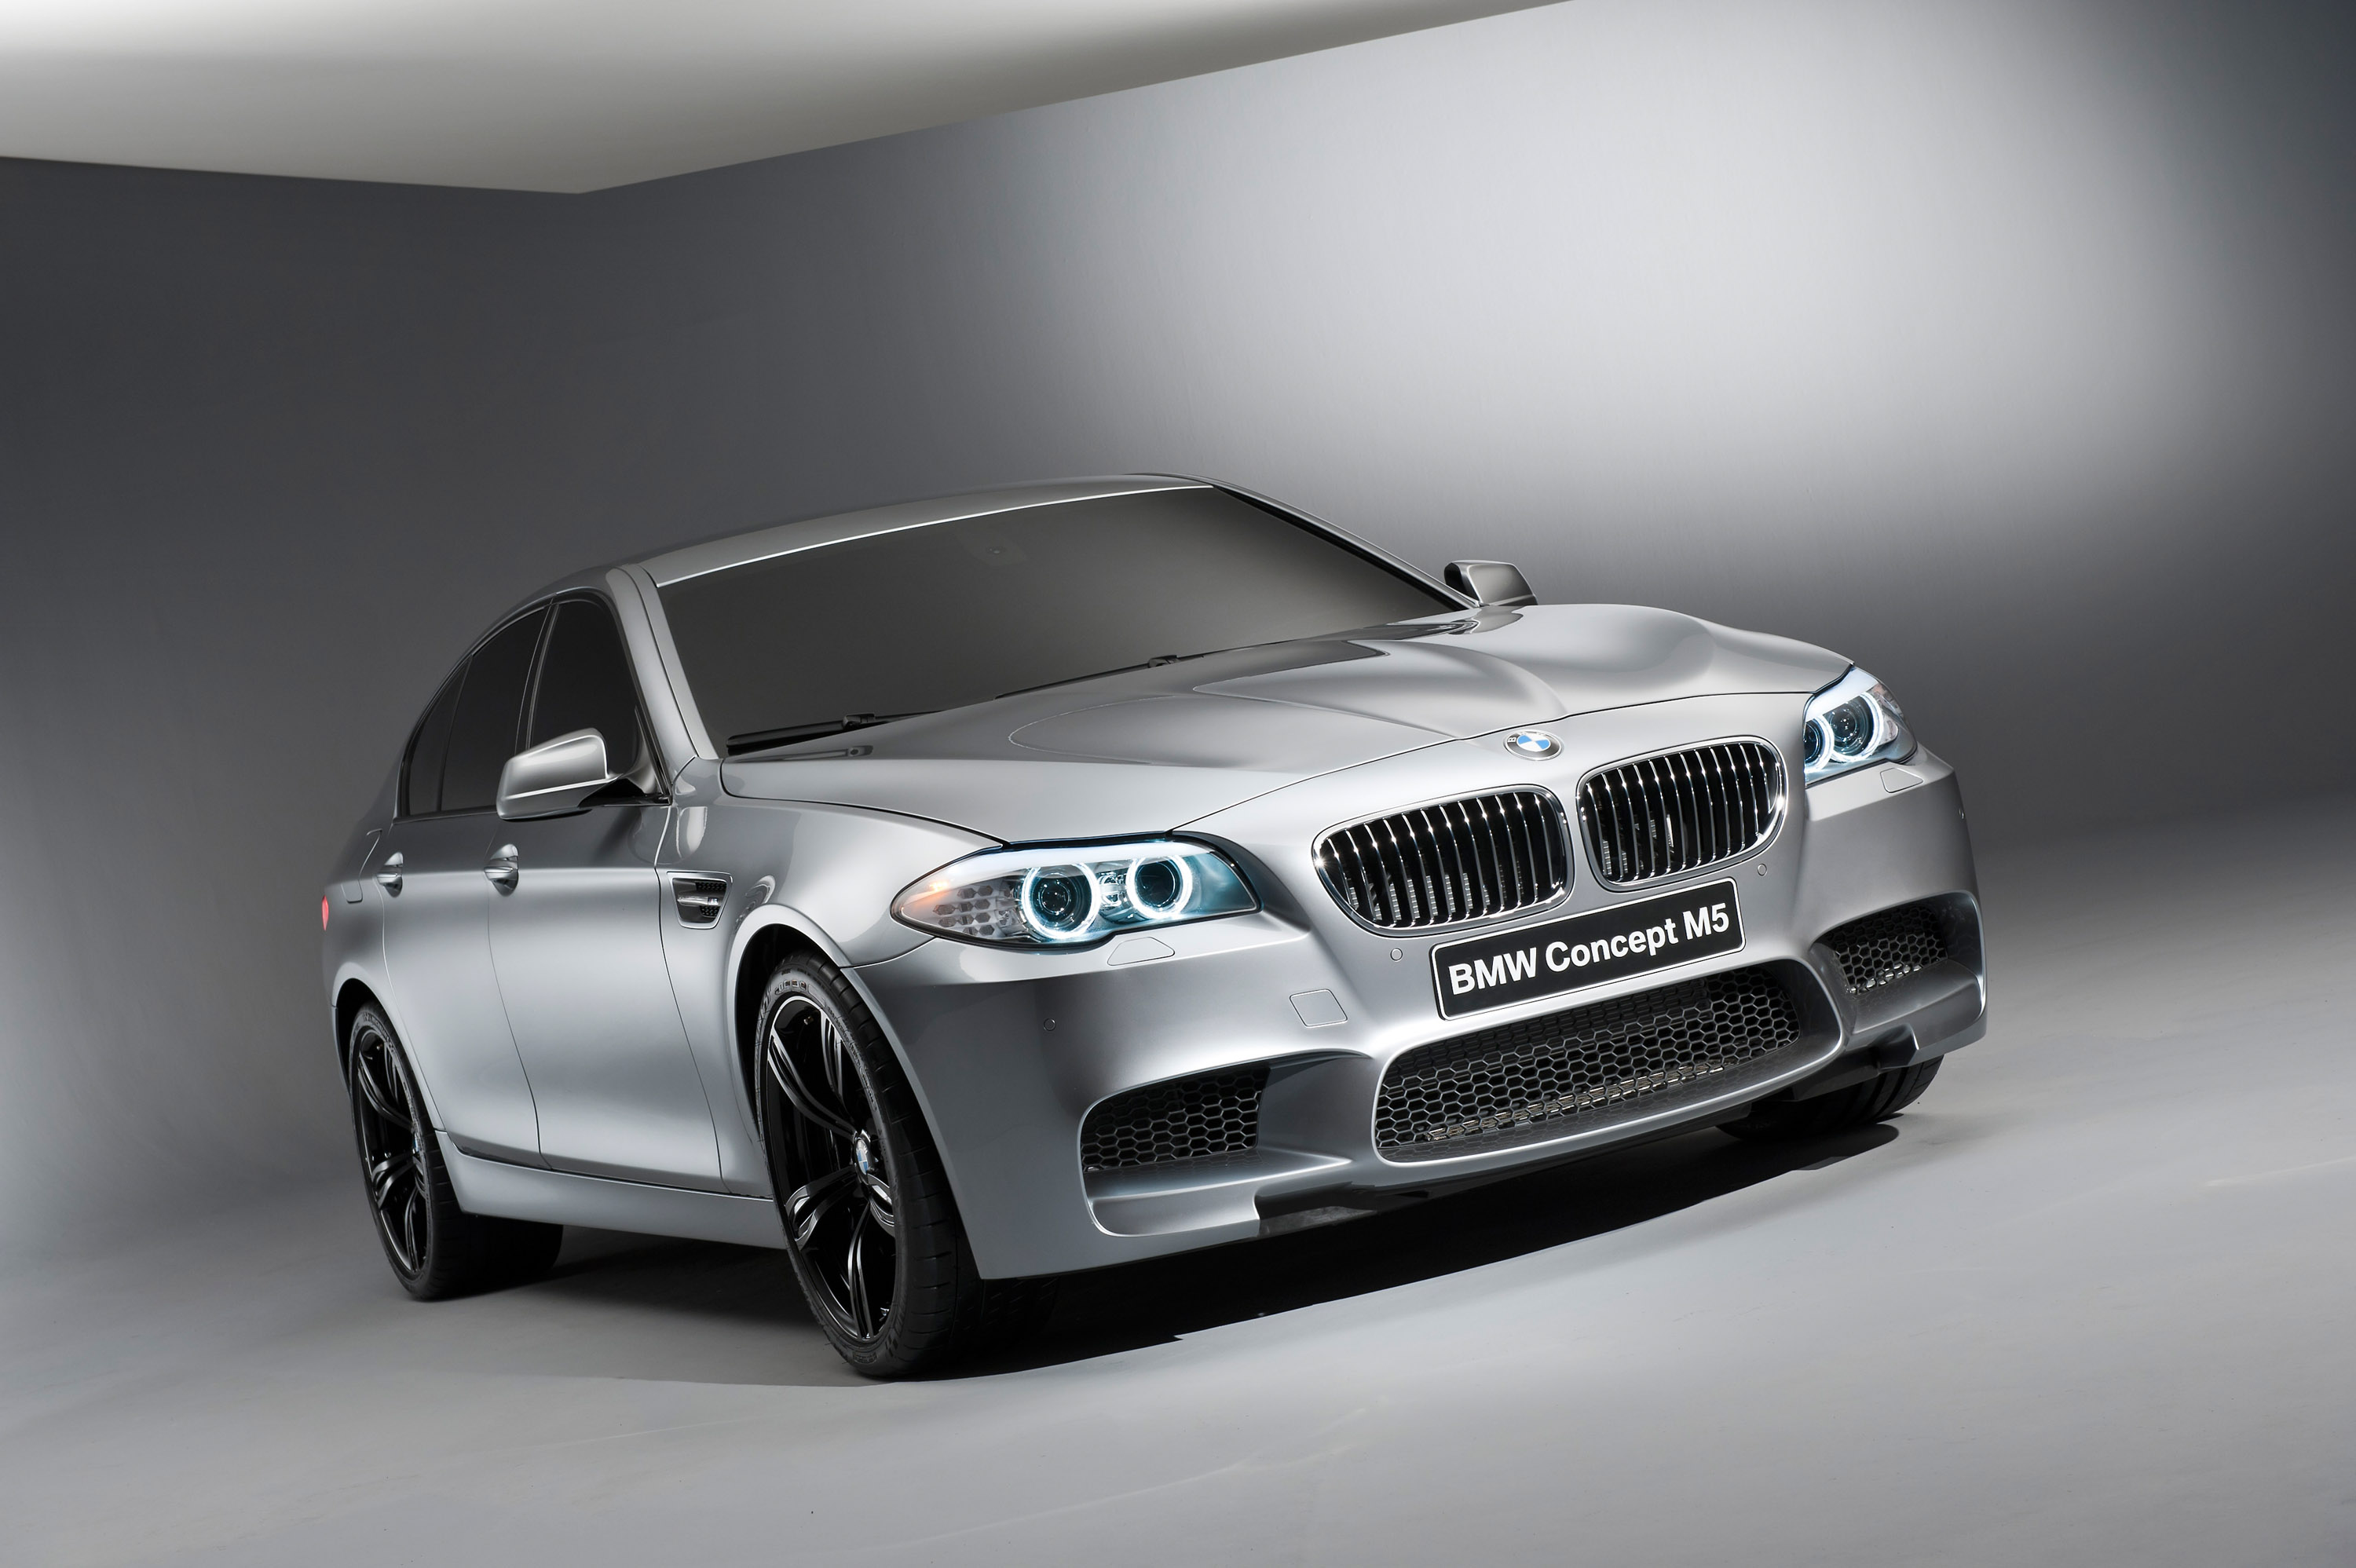 2012 BMW F10 M5 - drift and burnout [video]